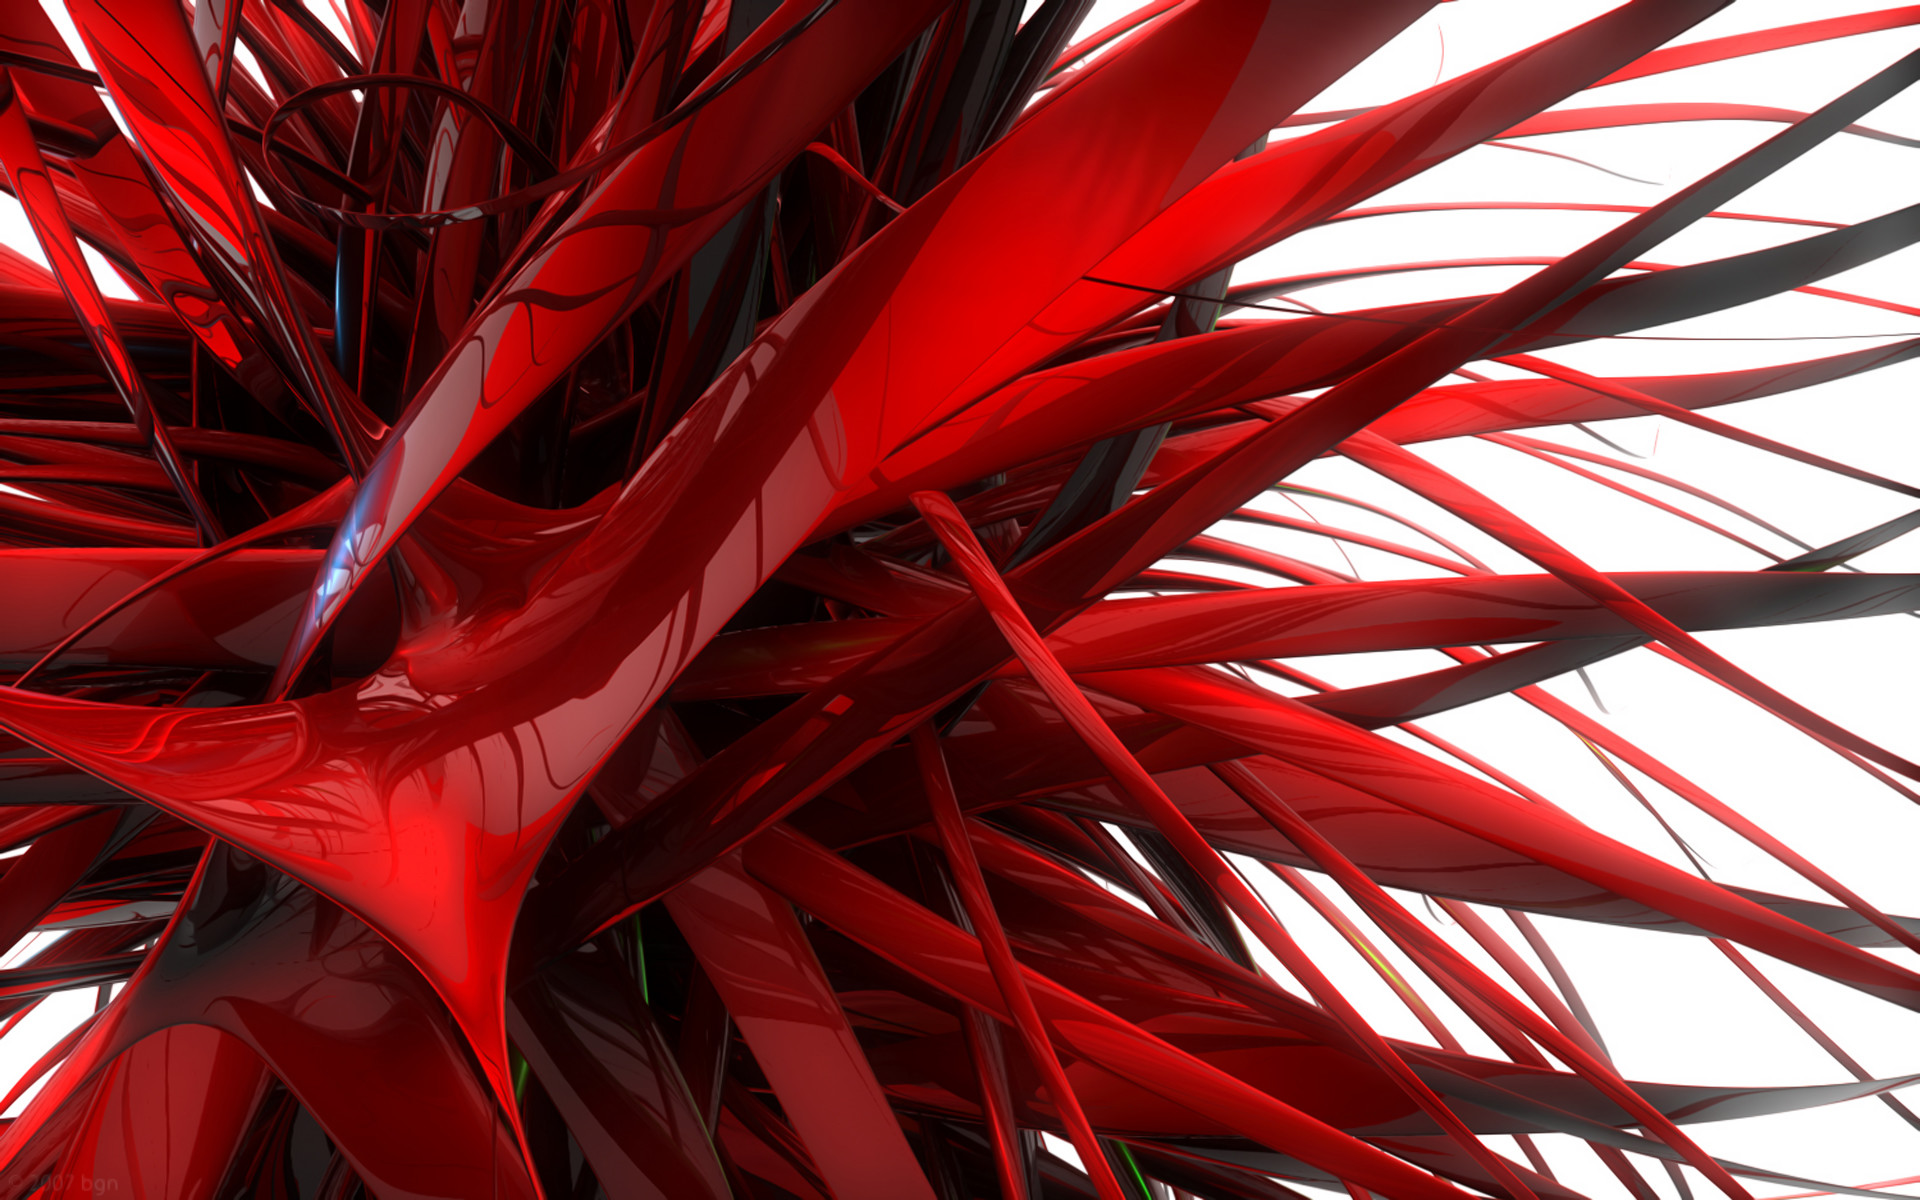 Red Abstract Asus And Black Full Hd Wallpapers